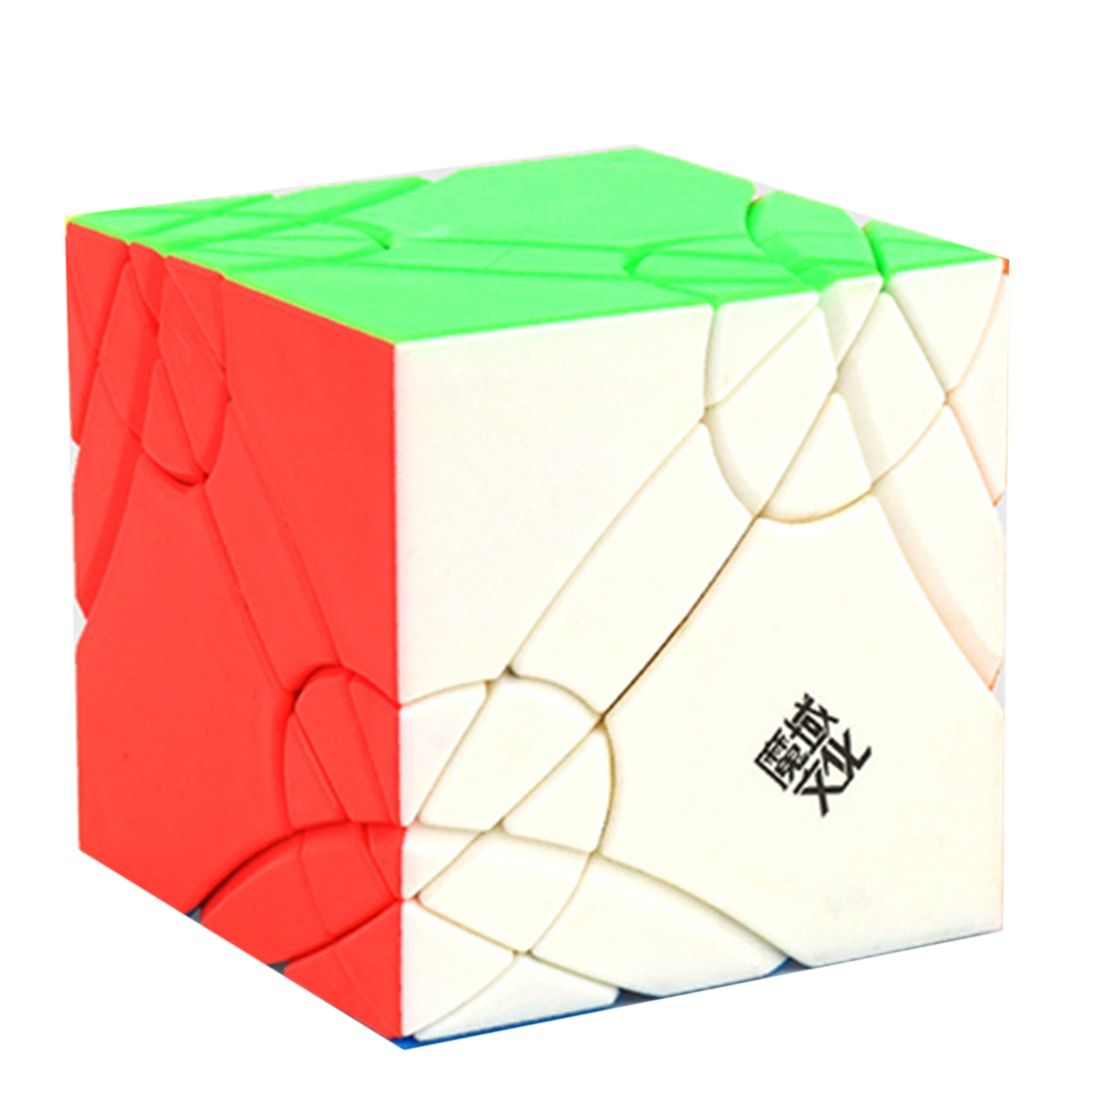 MoYu YJ8252 Axis Time Wheel Creative Magic Cube Puzzle Toys for Challenge - Colorful